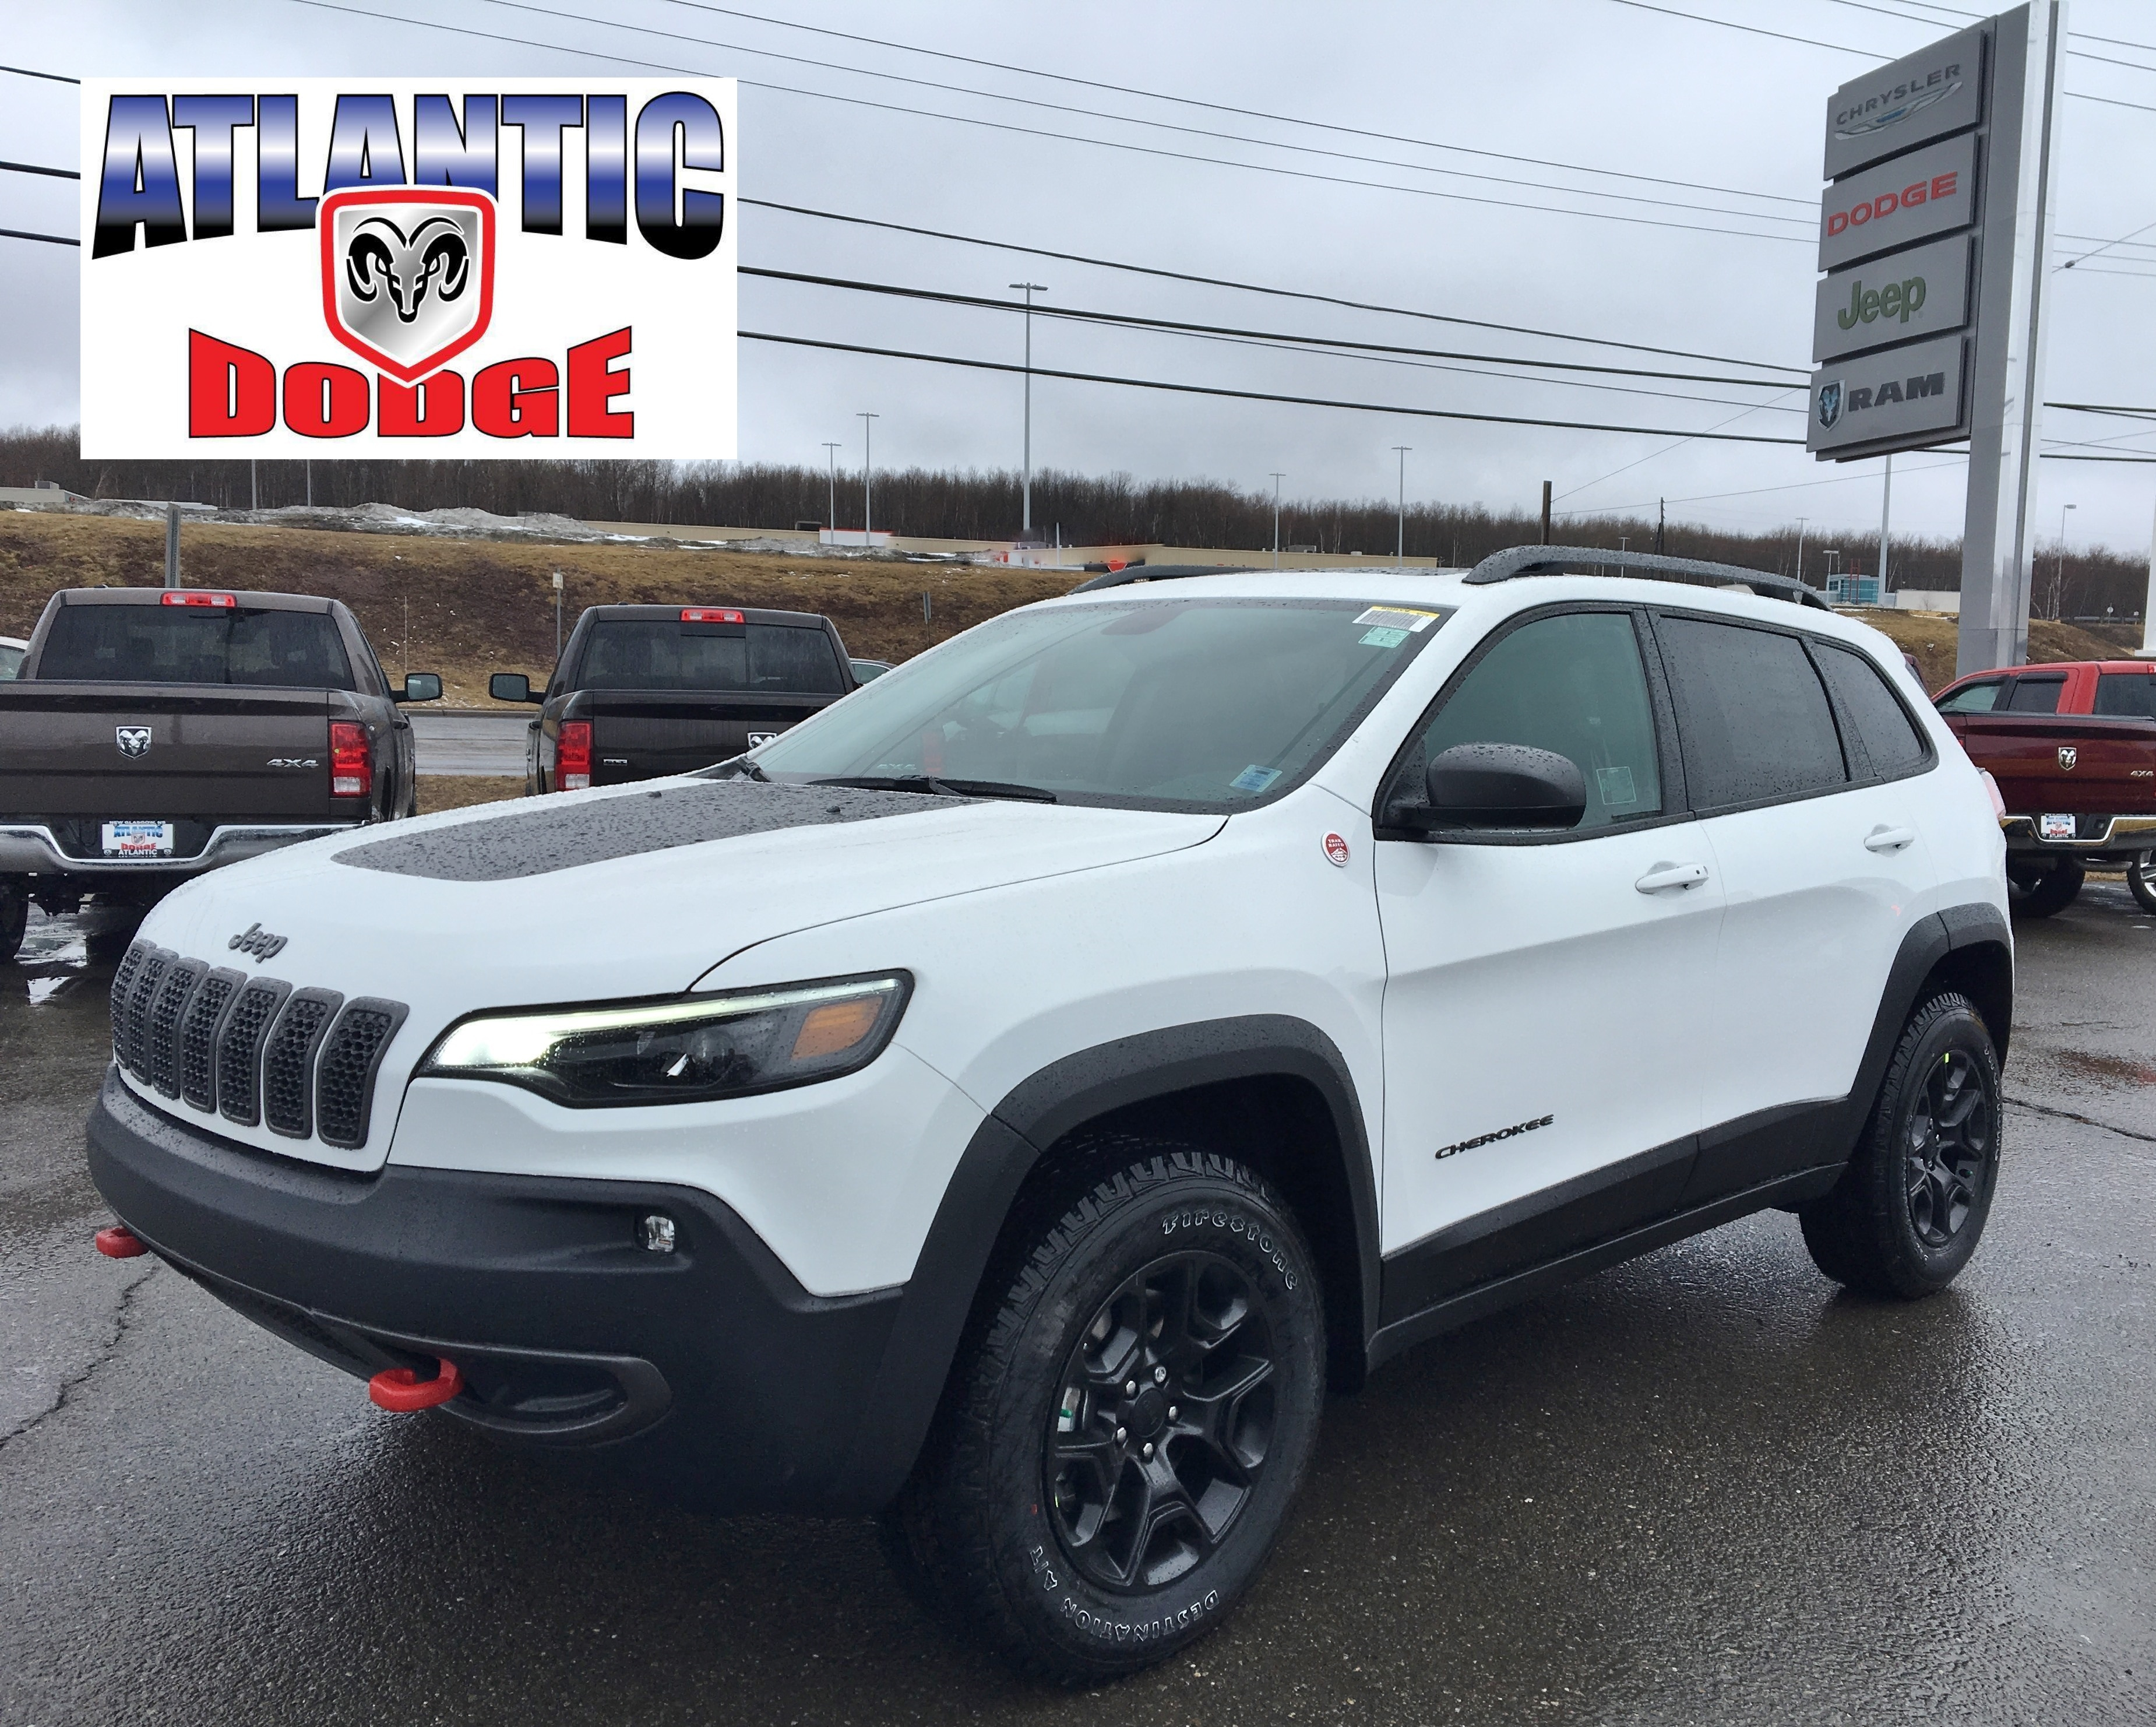 drive auto roadshow preview review jeep cherokee price trackhawk first grand